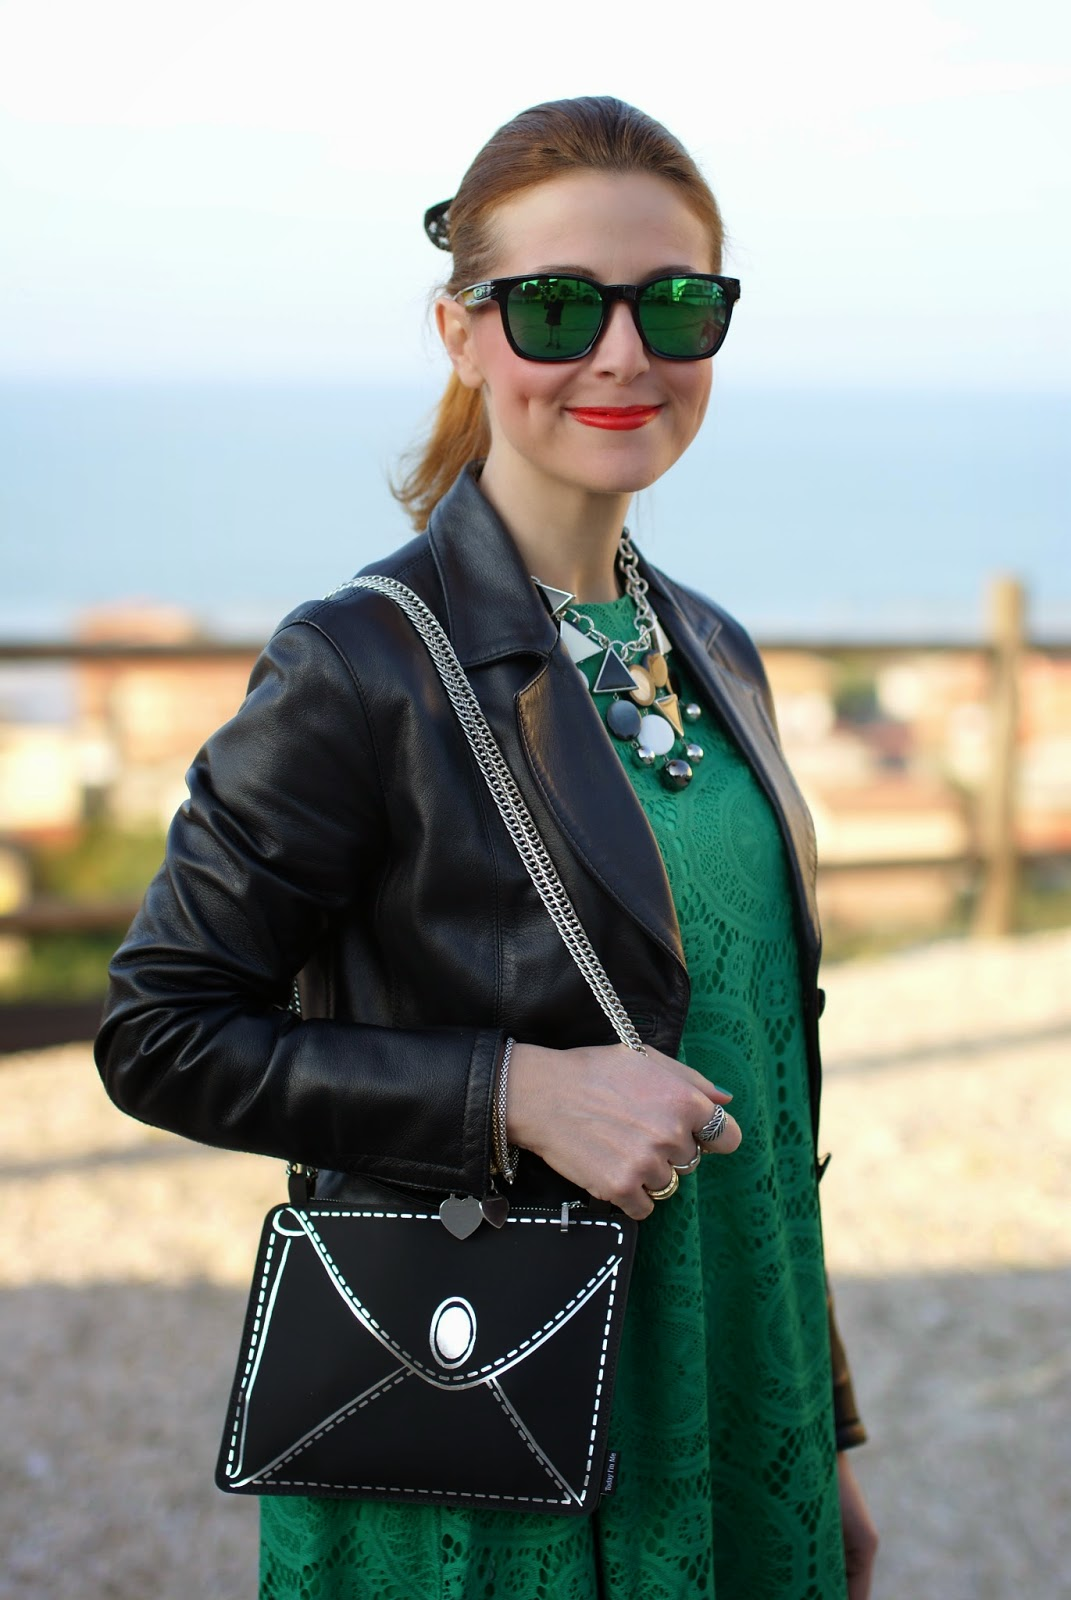 Vitti Ferria Contin collana, girls with dimples when smile, Today I'm me evening bag, Sheinside green lace dress, Fashion and Cookies, fashion blogger